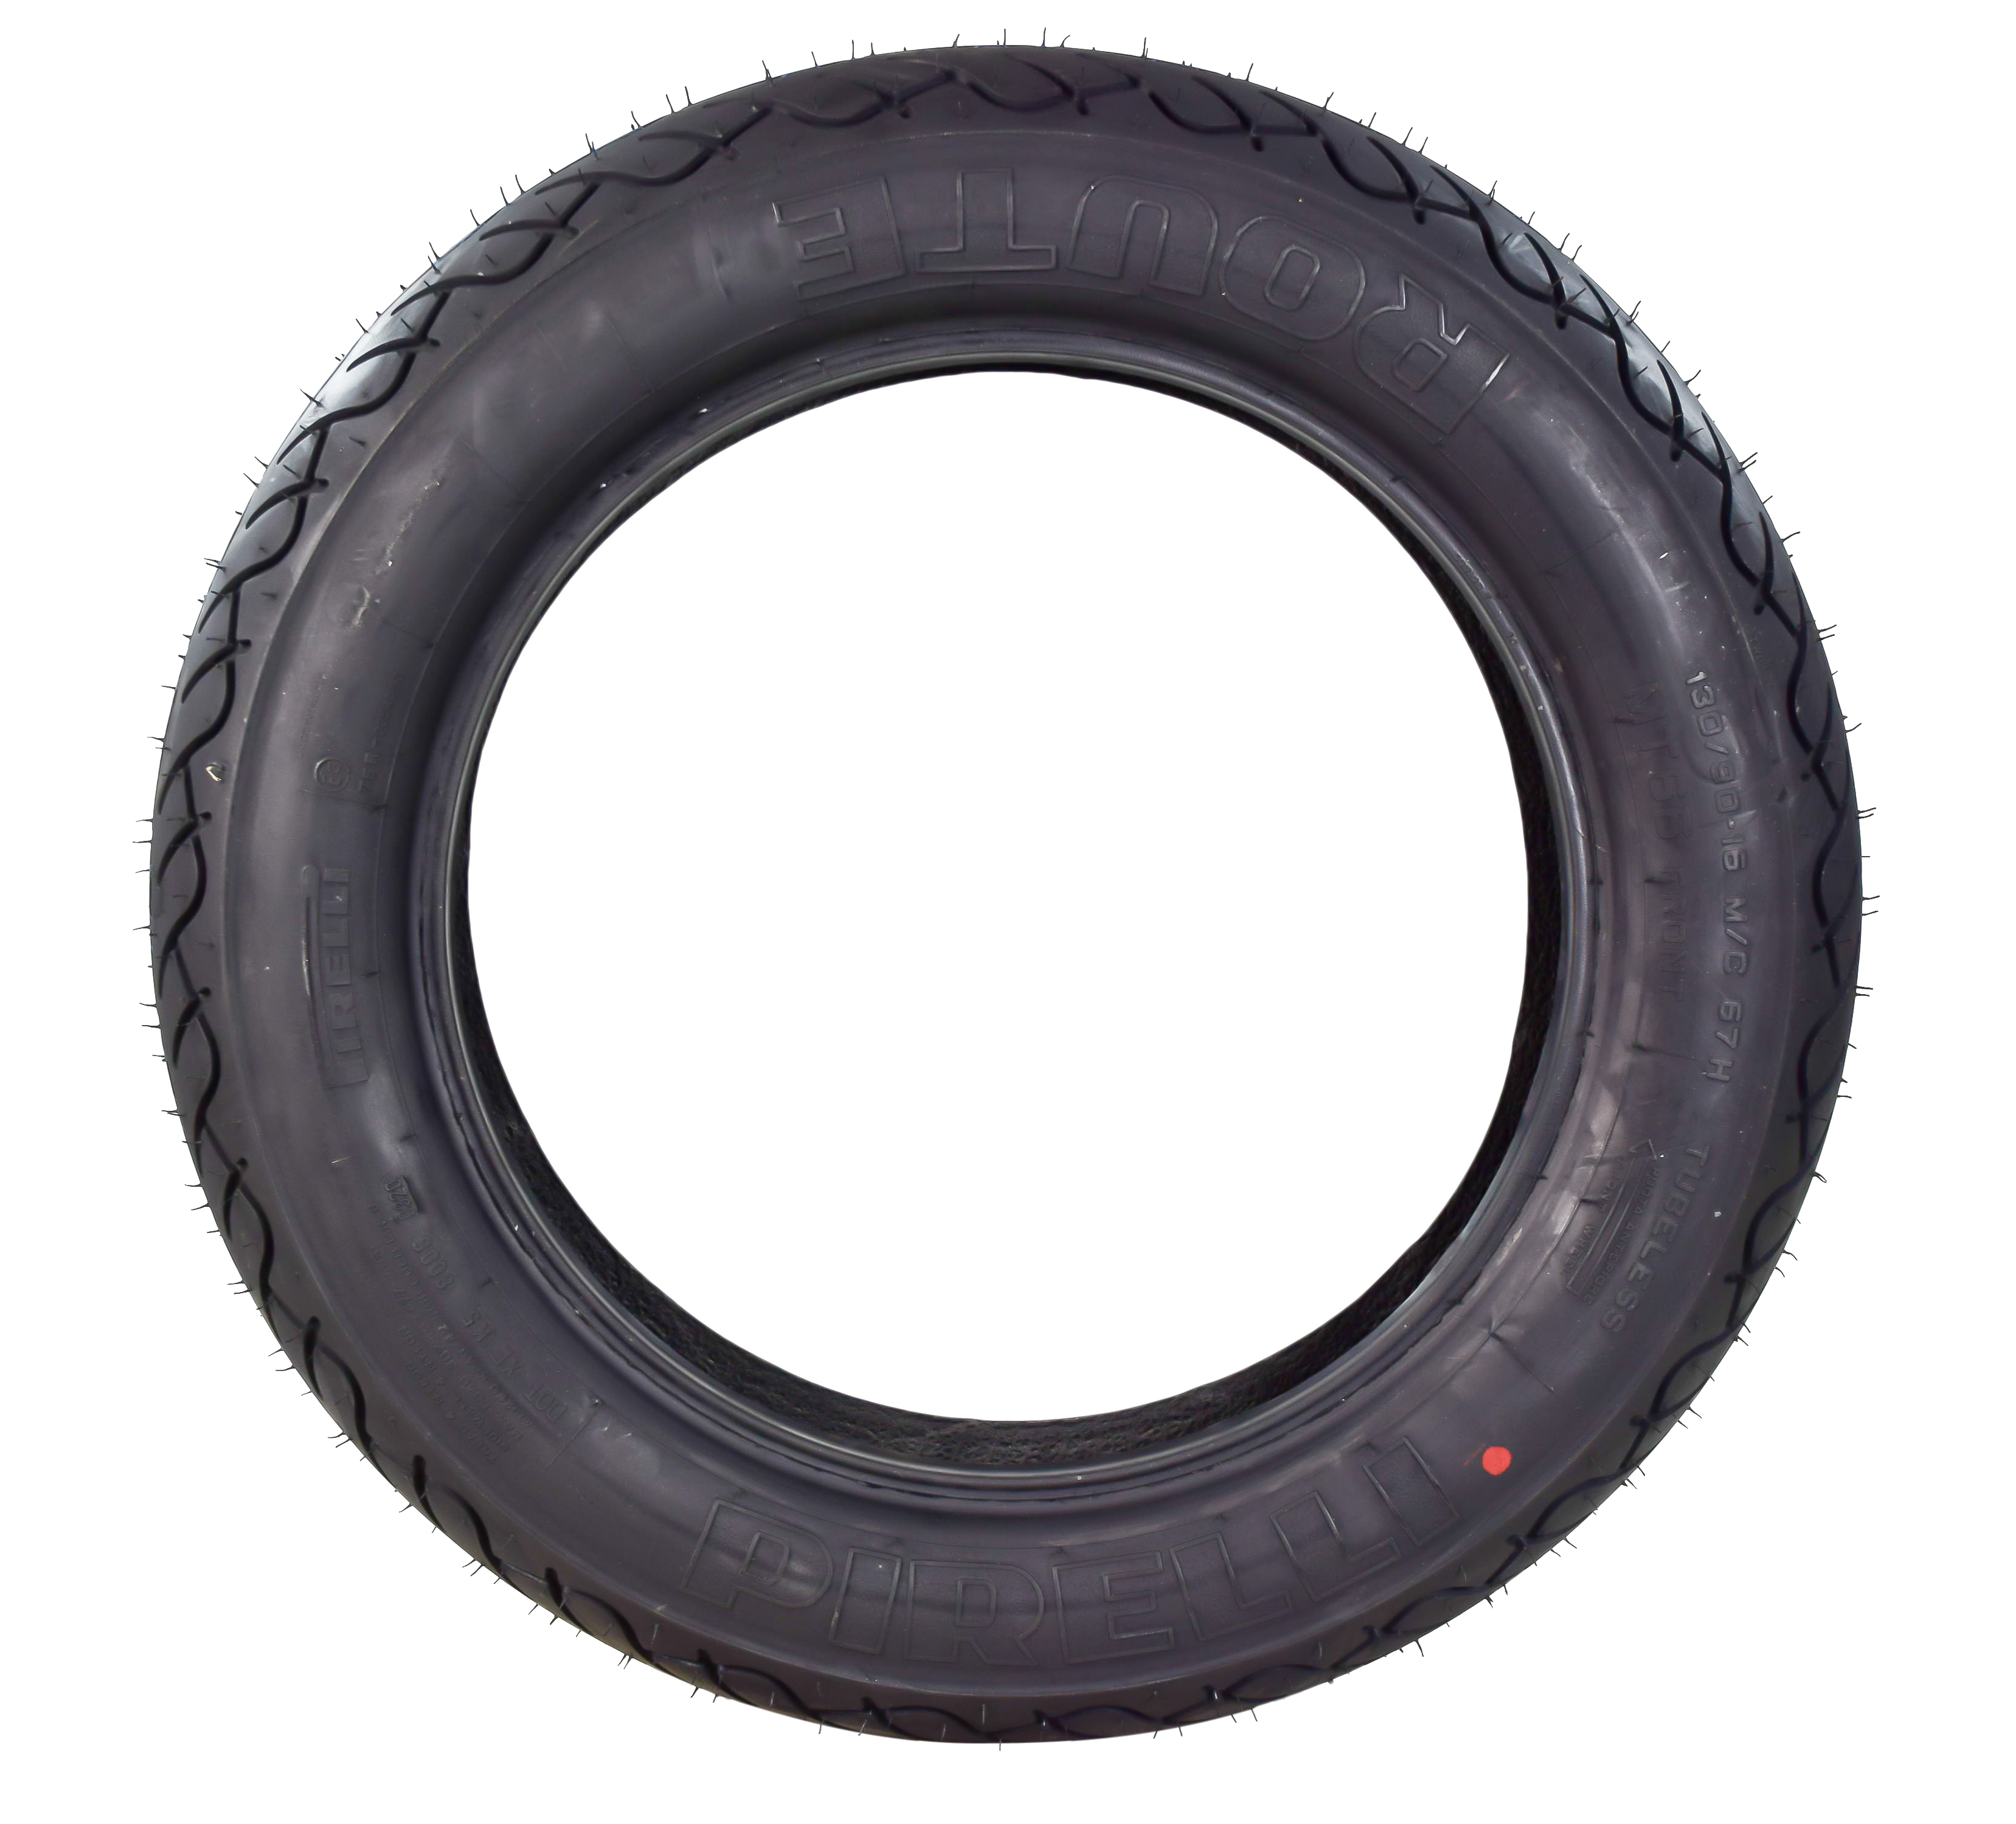 Pirelli Mt 66 Route 130 90 16 180 70 15 Front Rear Cruiser Motorcycle Tires Set Ebay